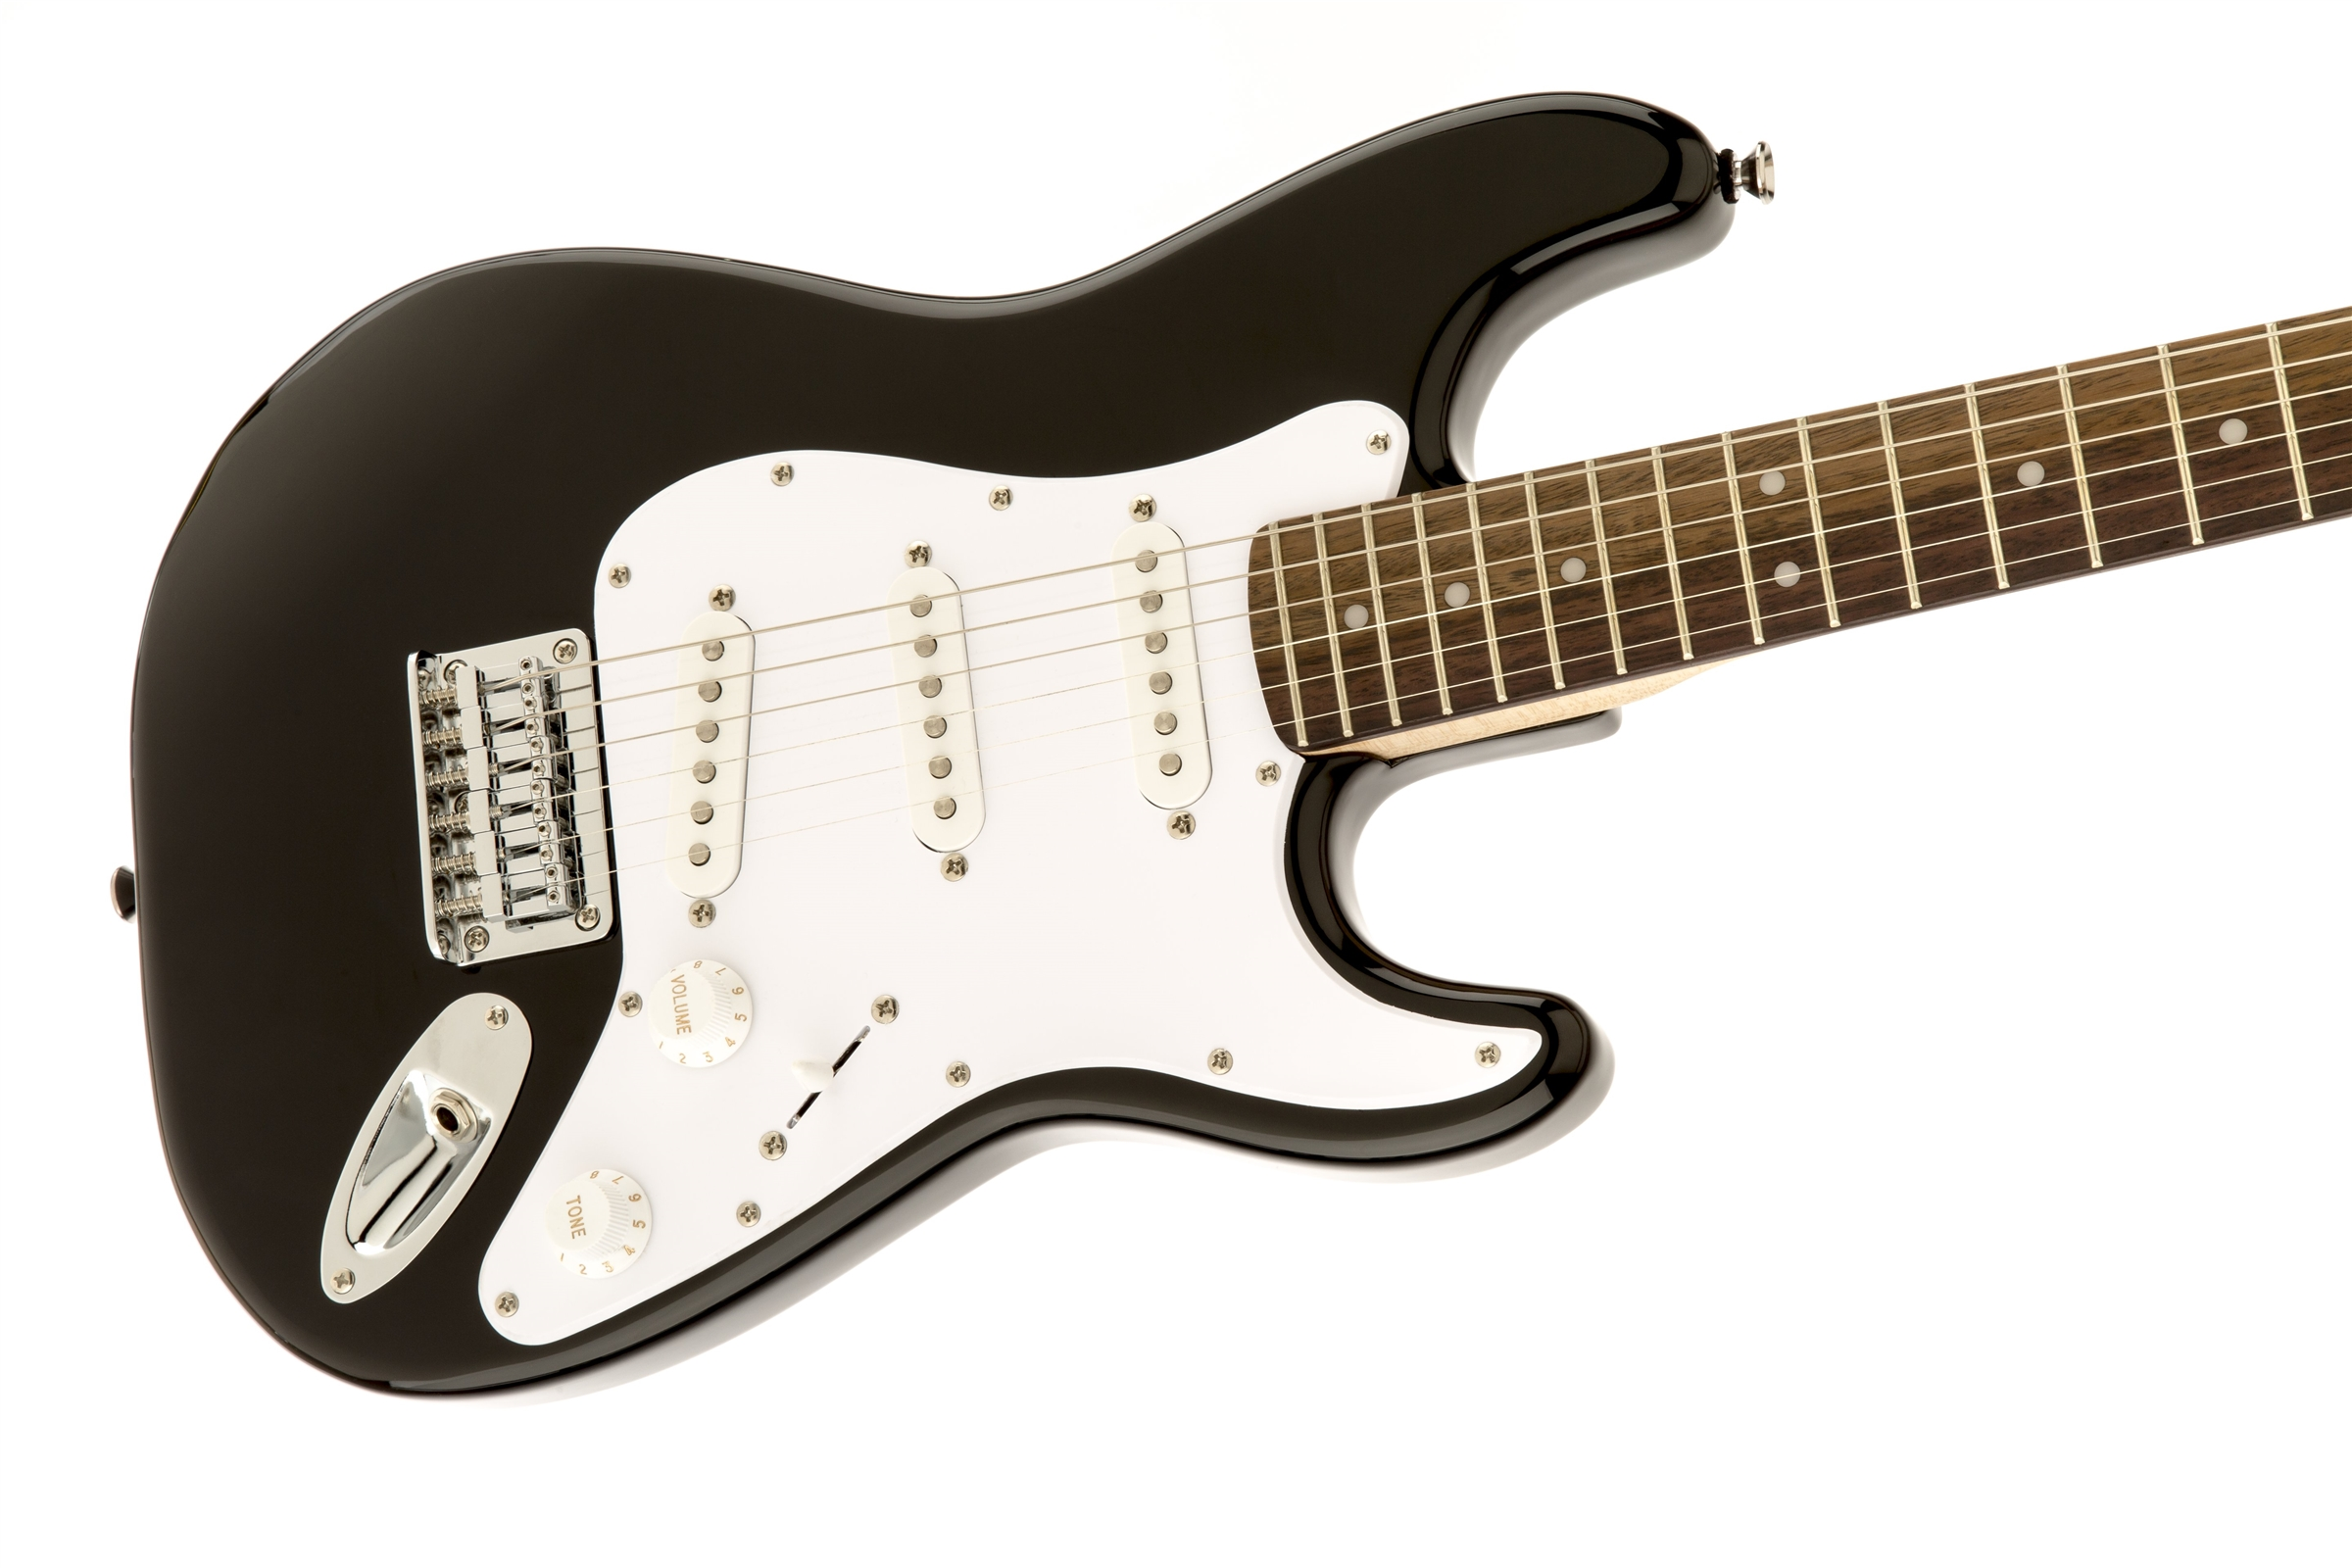 squier mini rosewood fingerboard black squier electric guitars